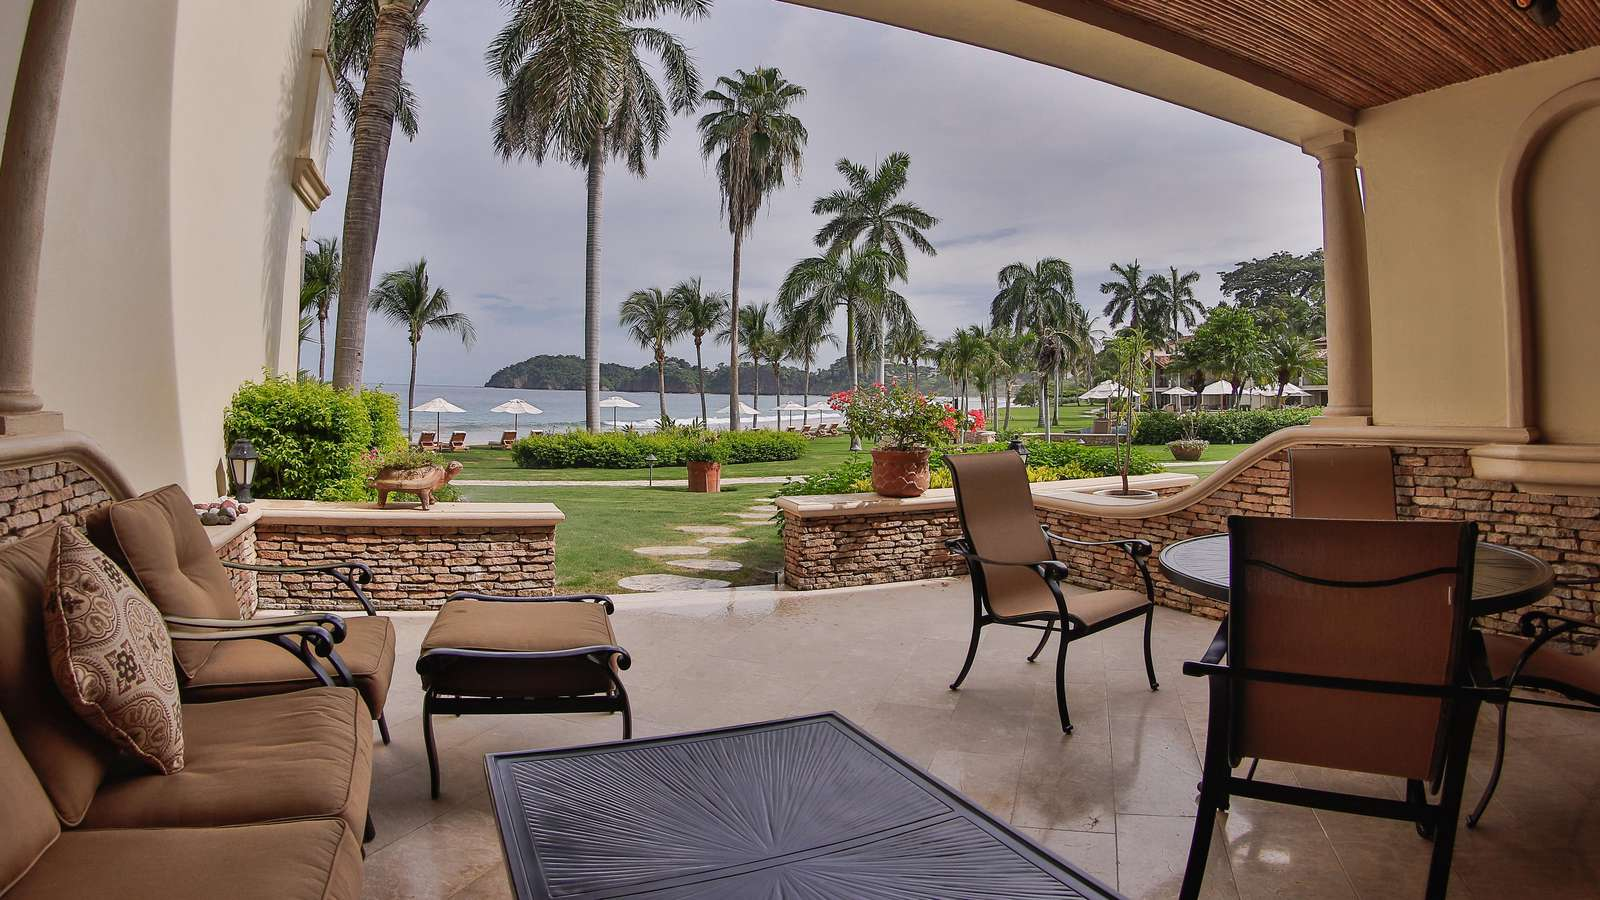 The Palms #3, a Luxury Oceanfront town home